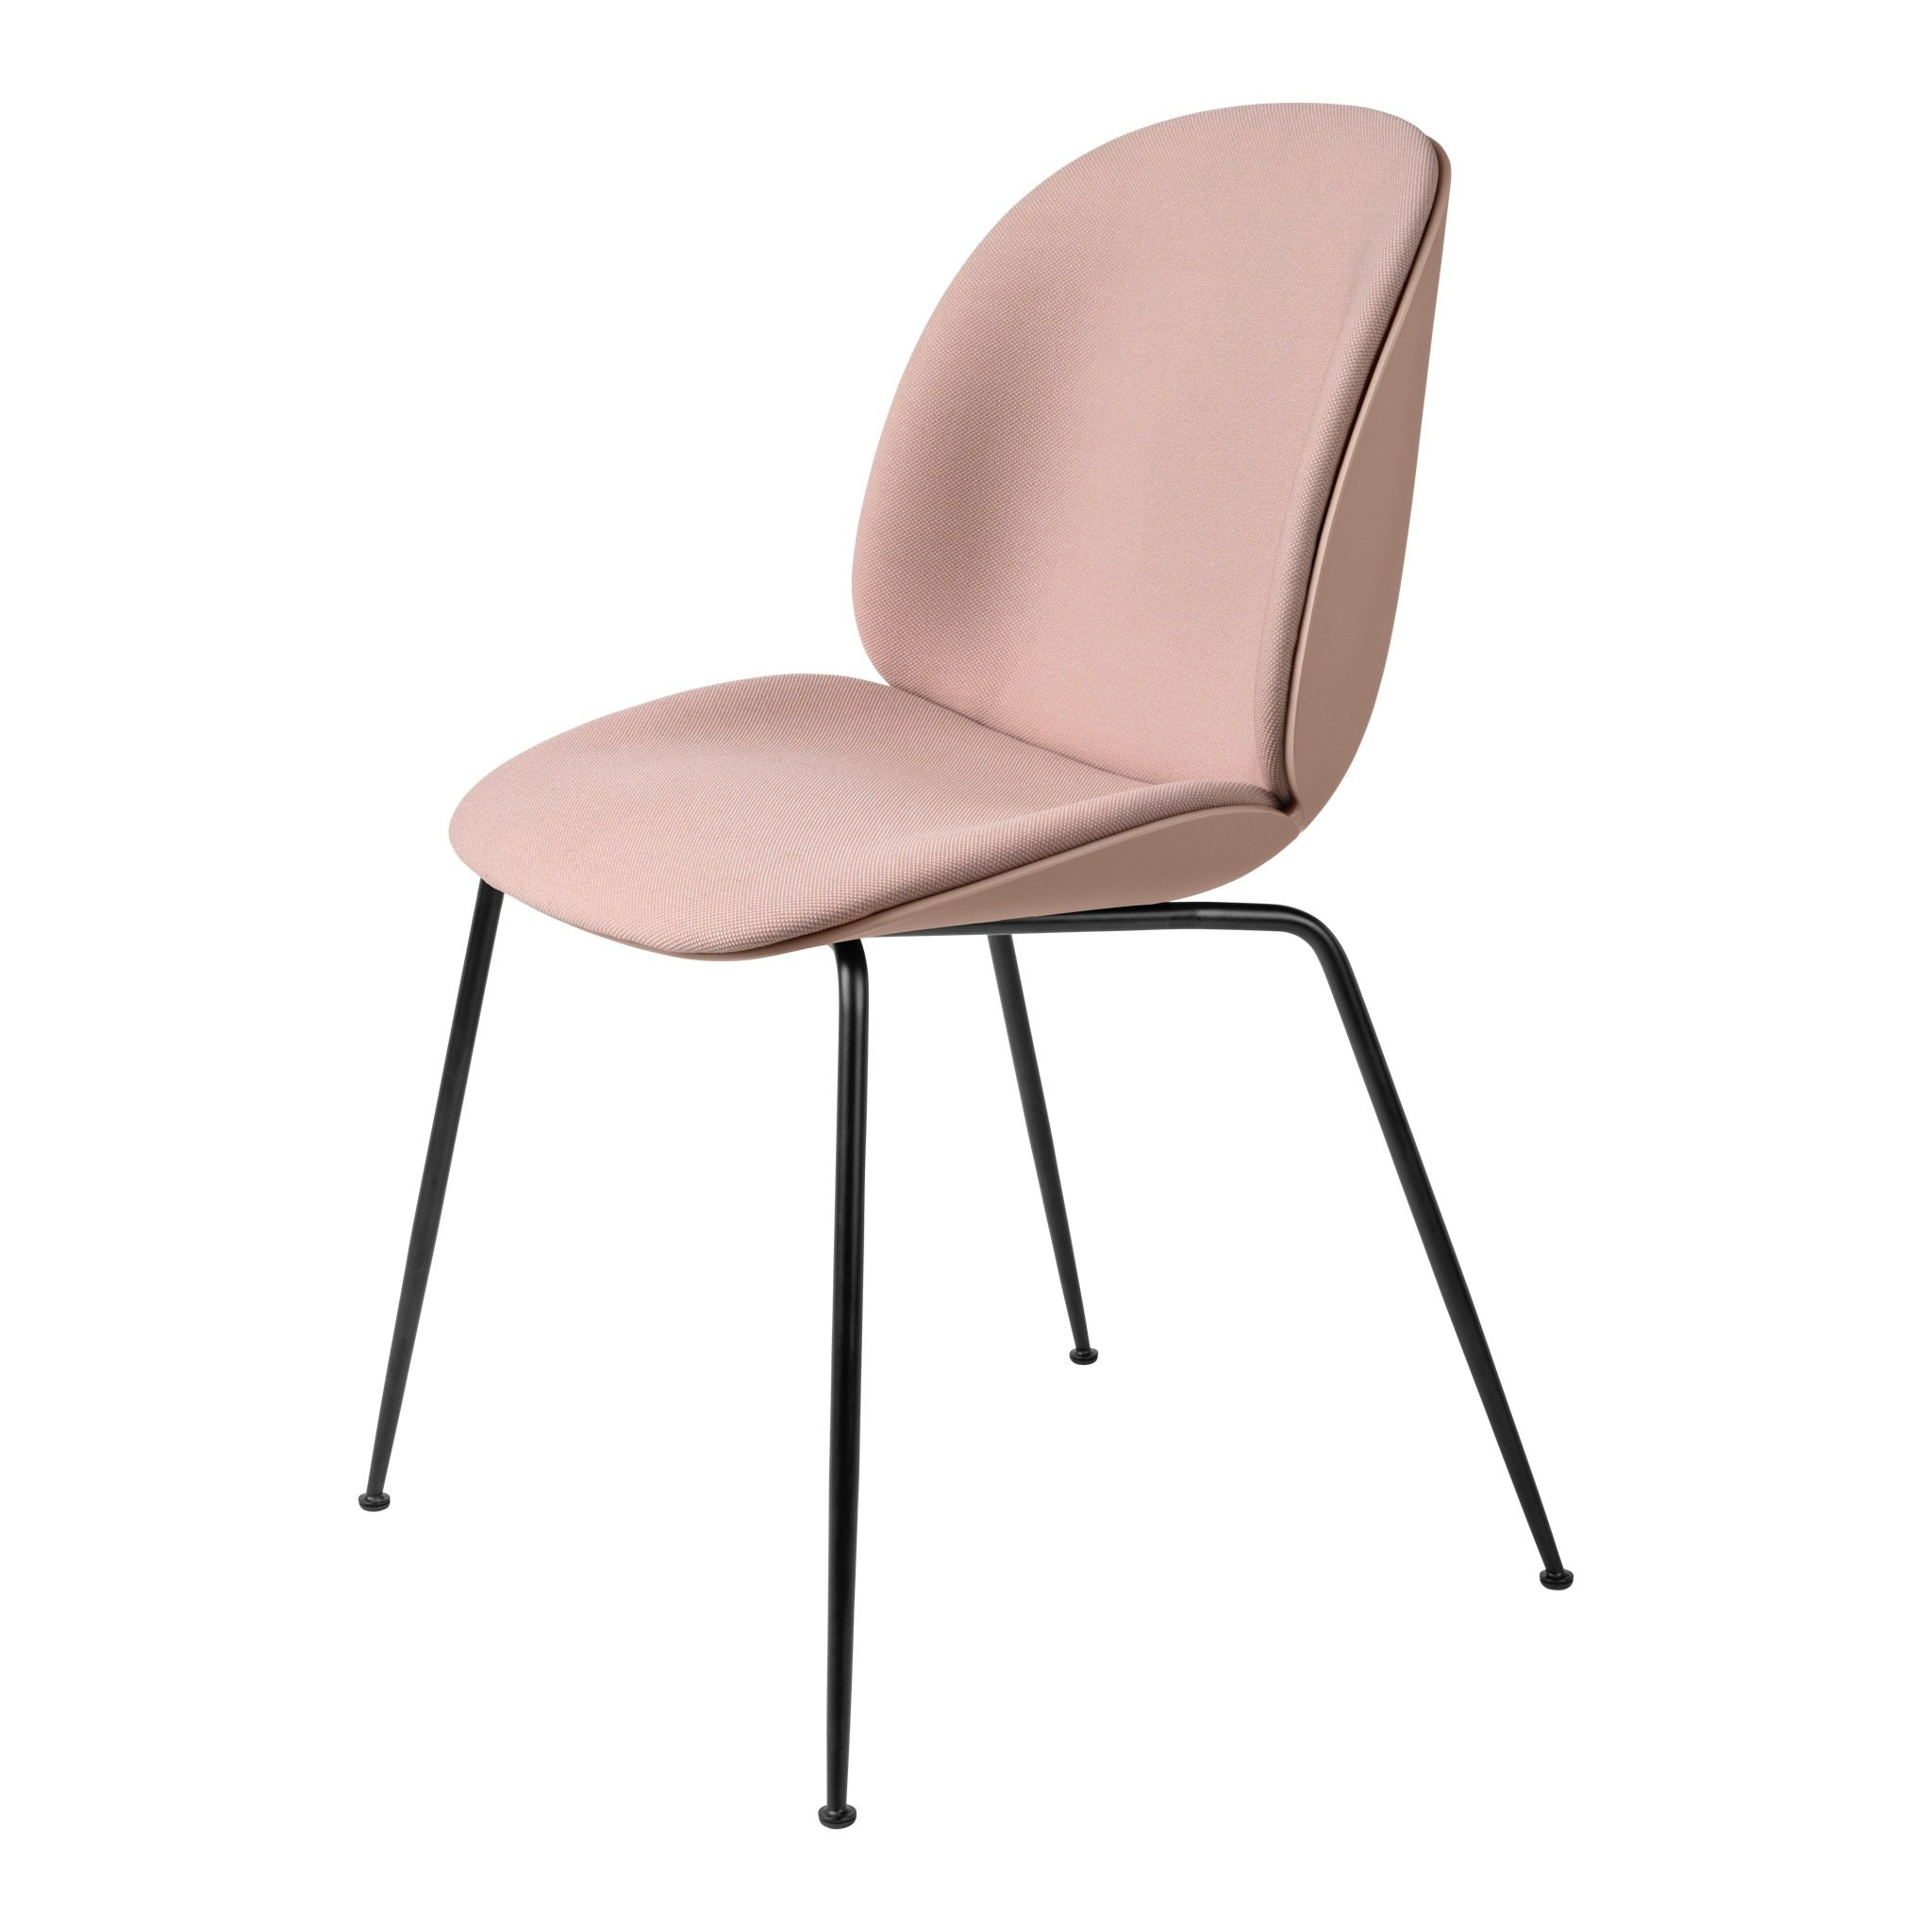 Beetle Dining Chair Conic Base Front Upholstered by Gubi